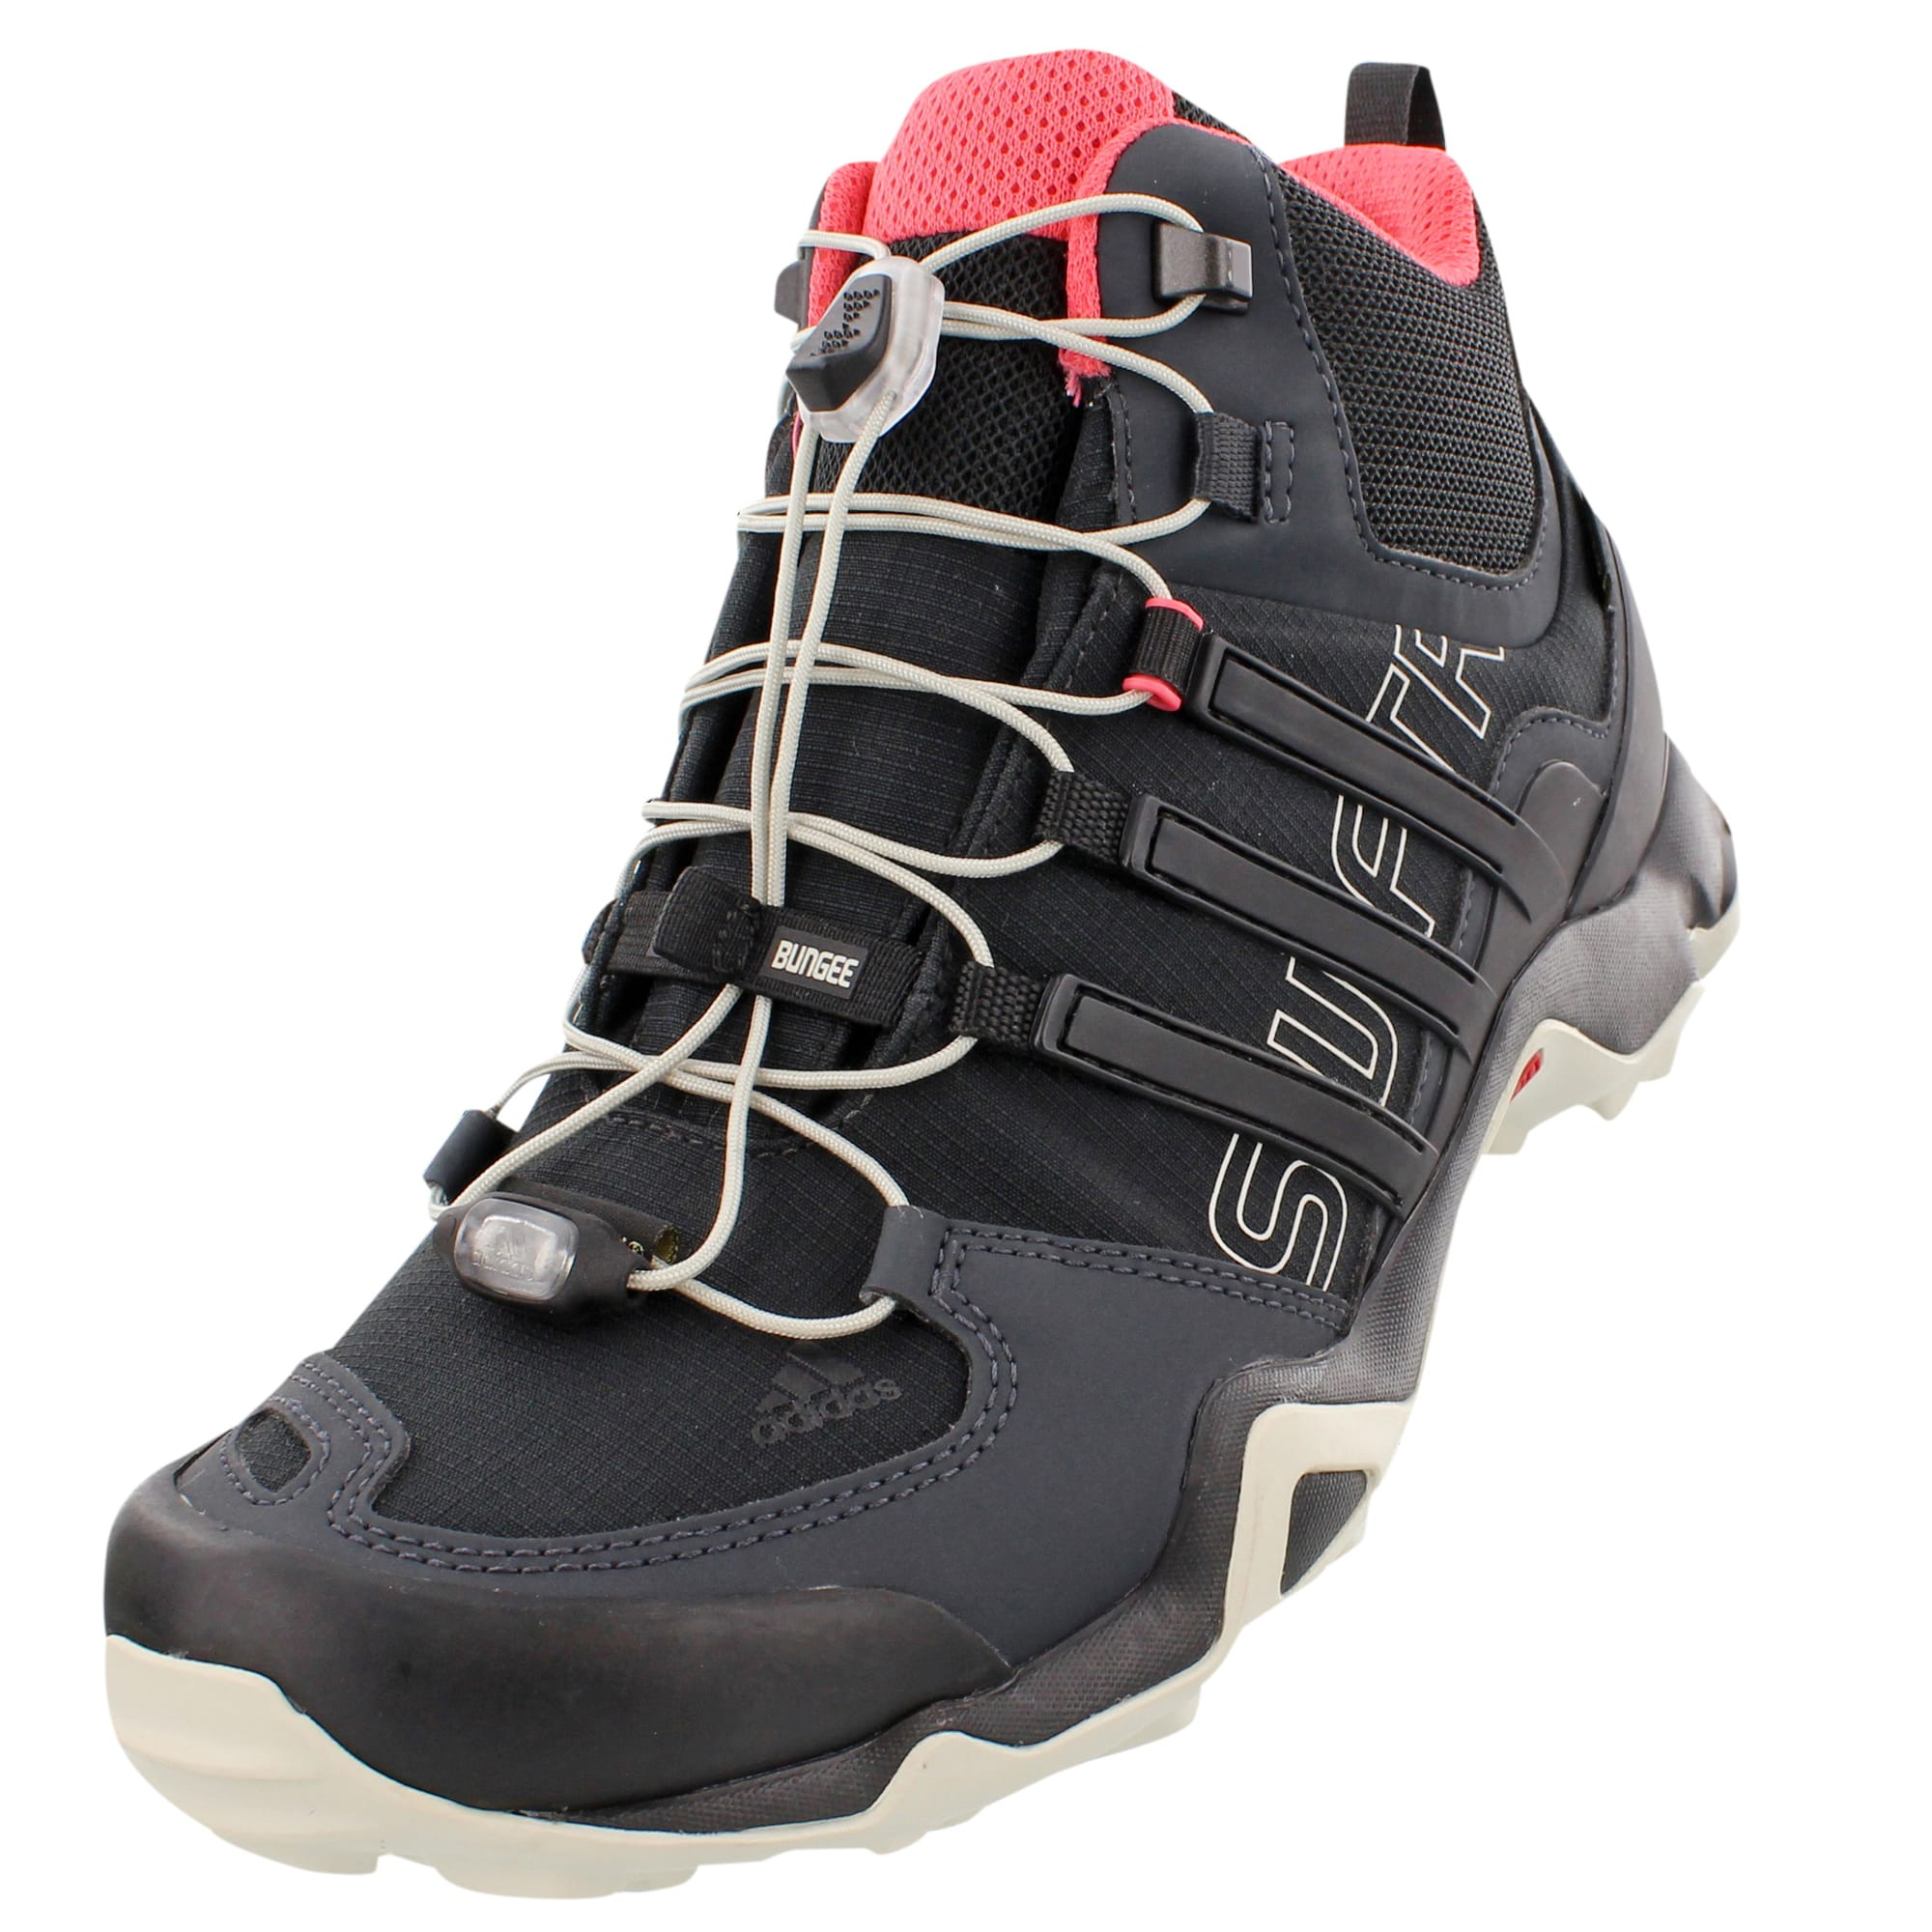 0d7322584115 Adidas Terrex Swift R Mid GTX Hiking Boots - thumbnail 3